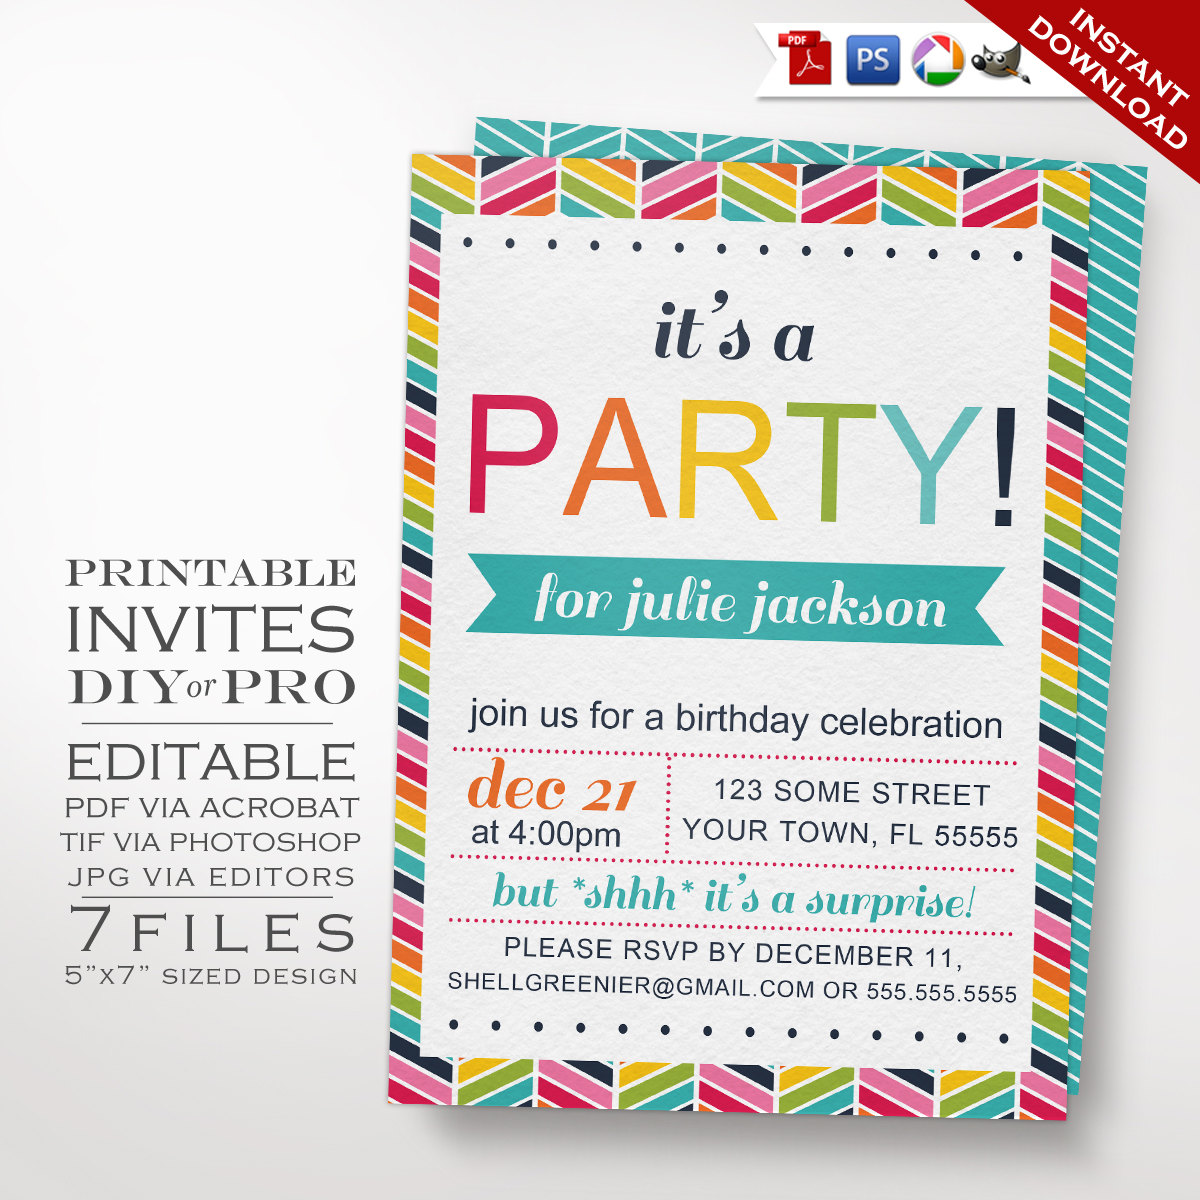 Parties DIY Rainbow Birthday Party Invitation Template Chevron Previous Next